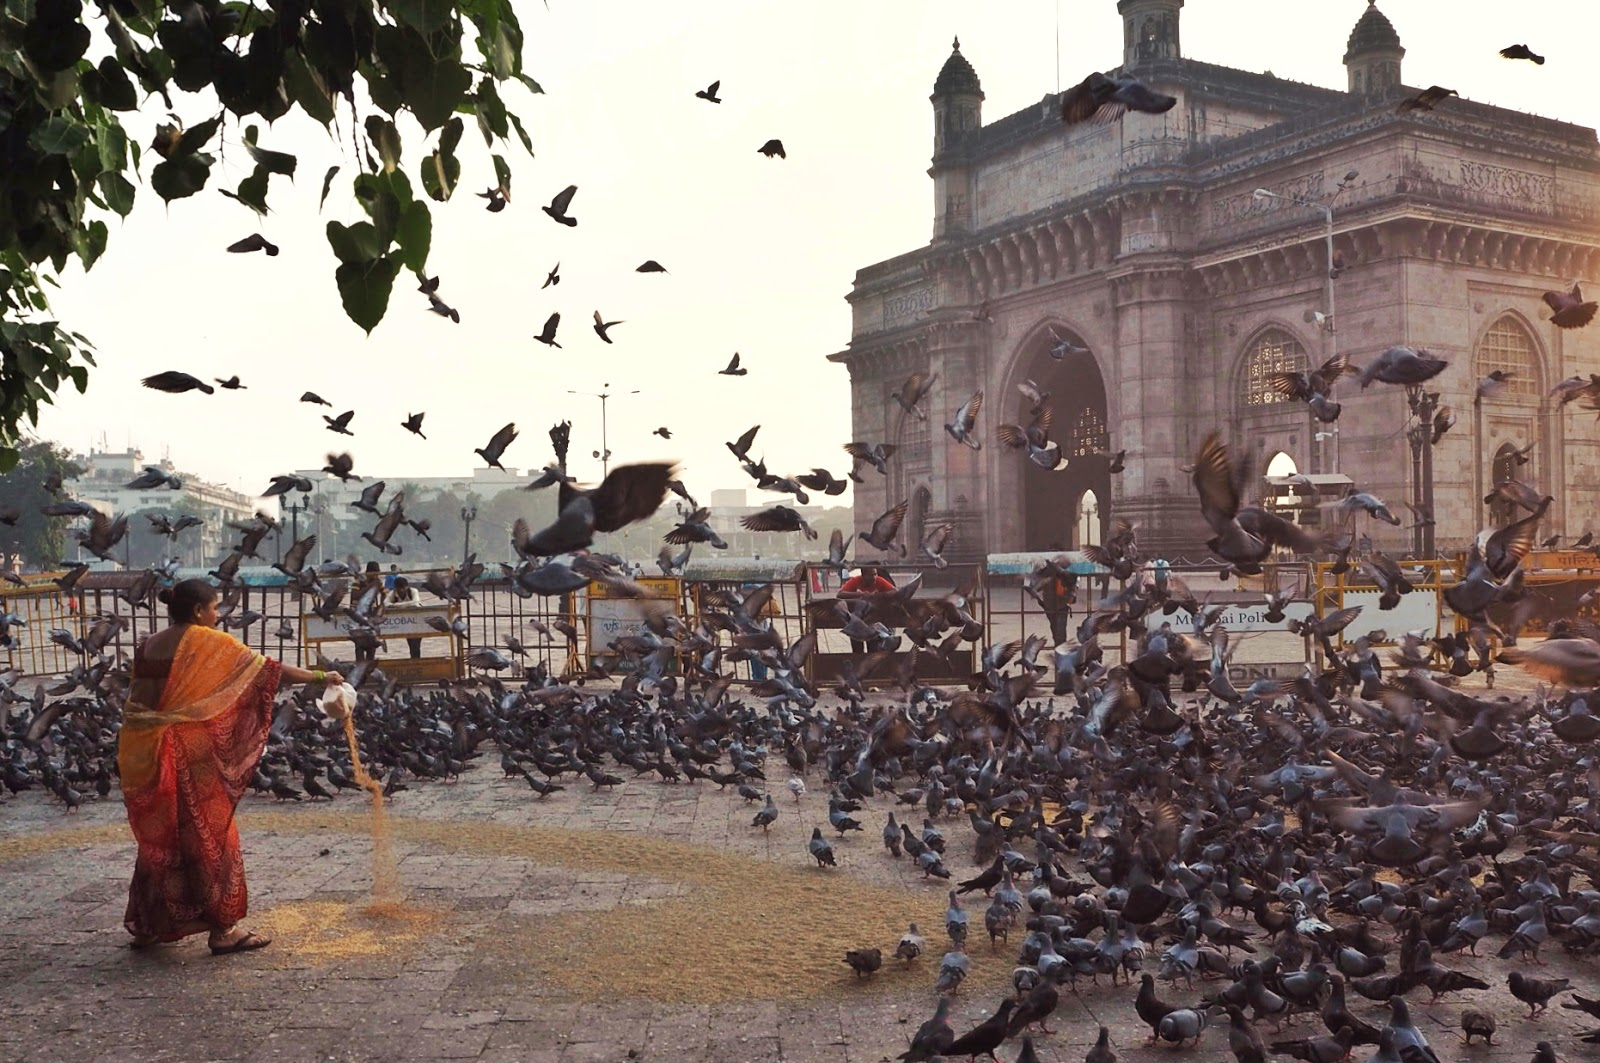 Feeding birds at the gateway of India